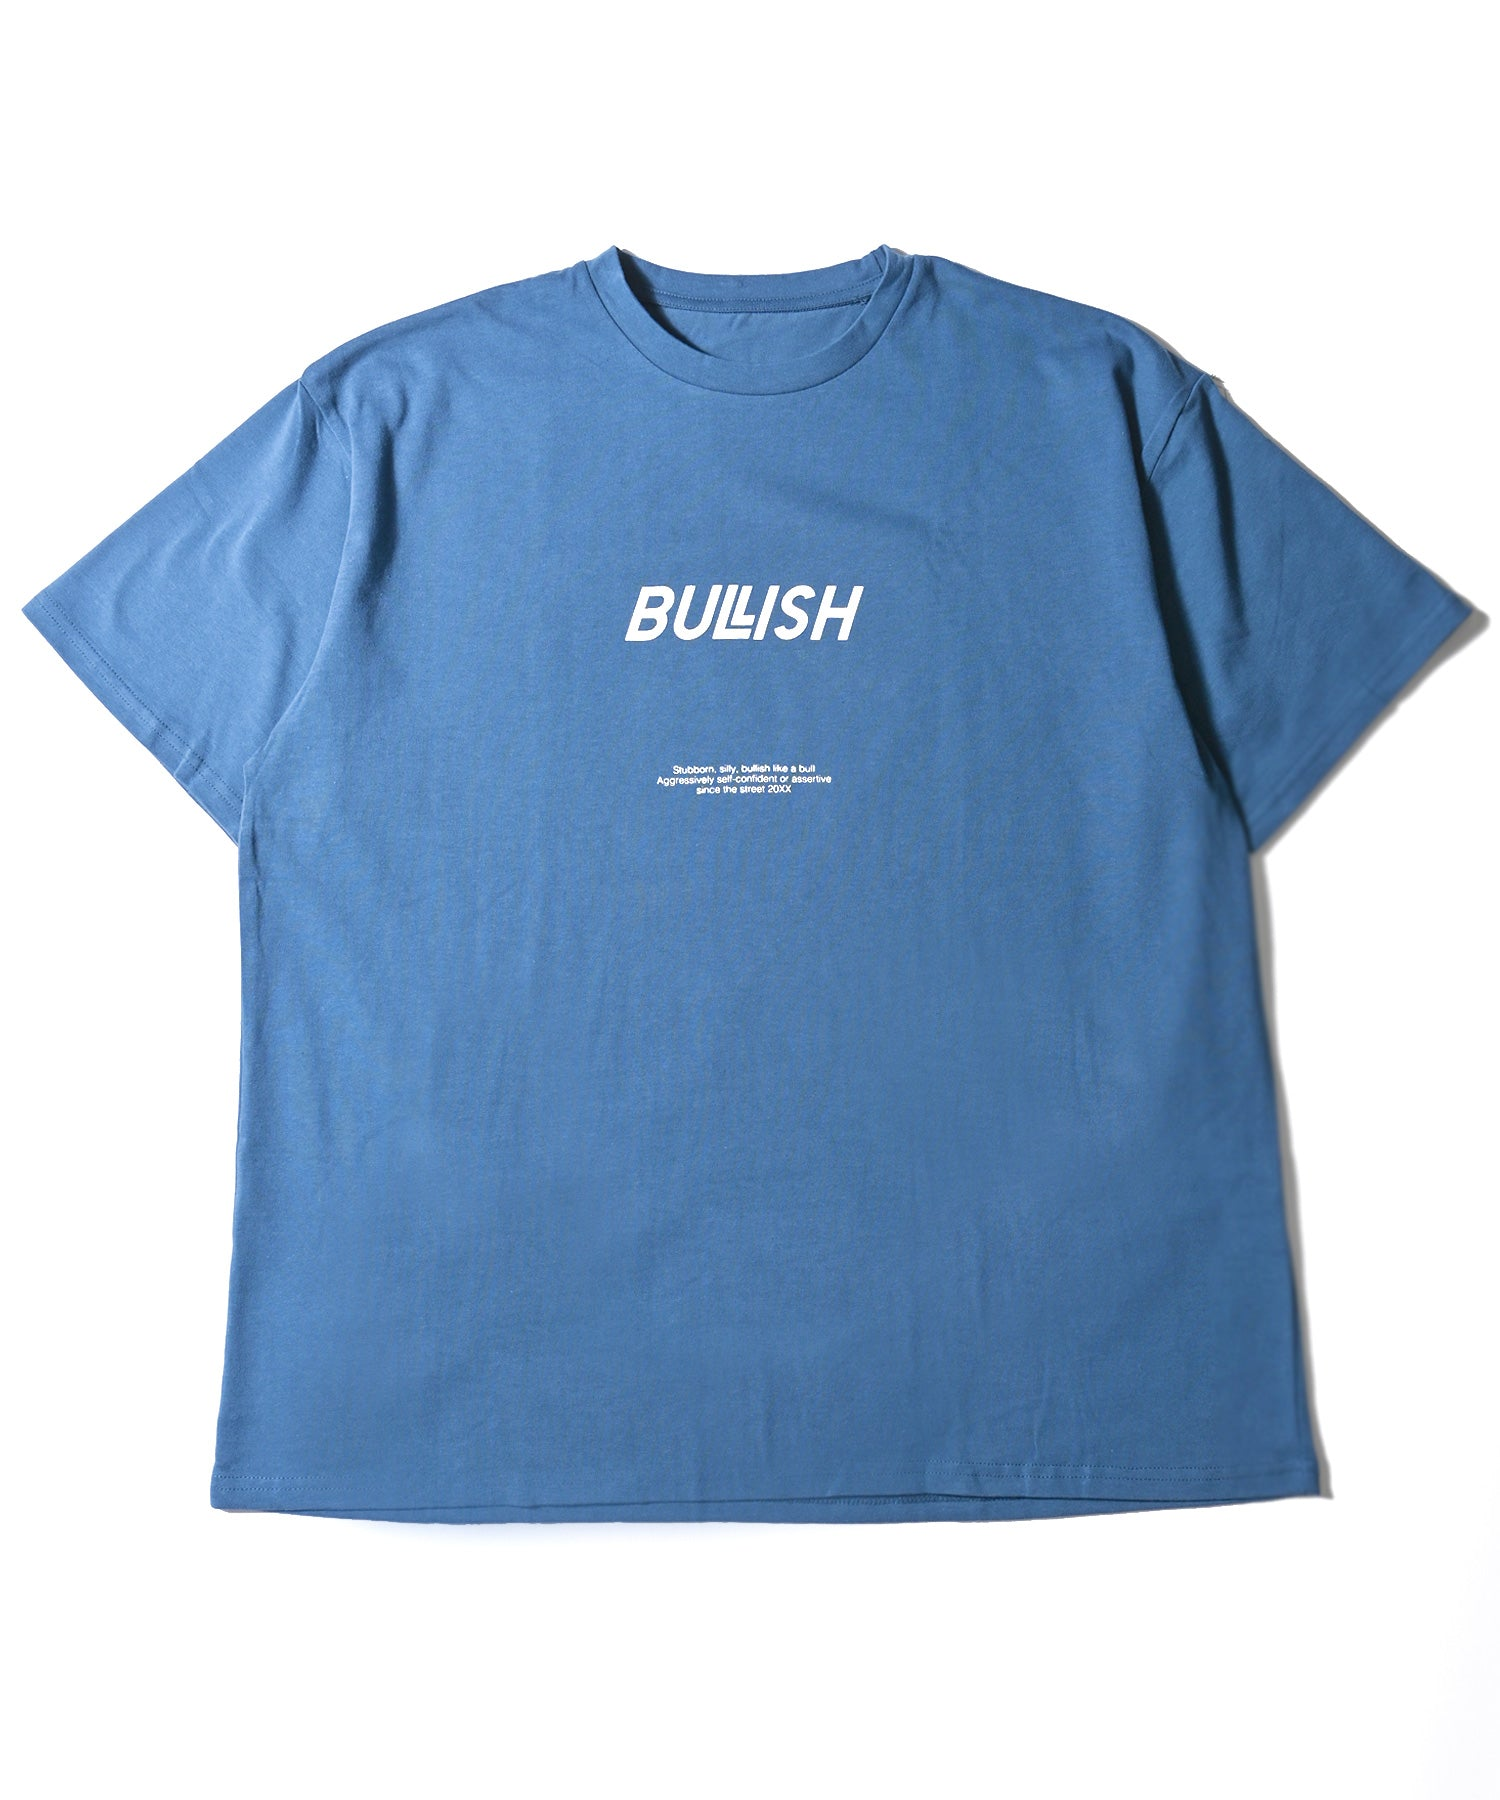 BULLISH LOGO PRINT LOOSE T-SHIRT